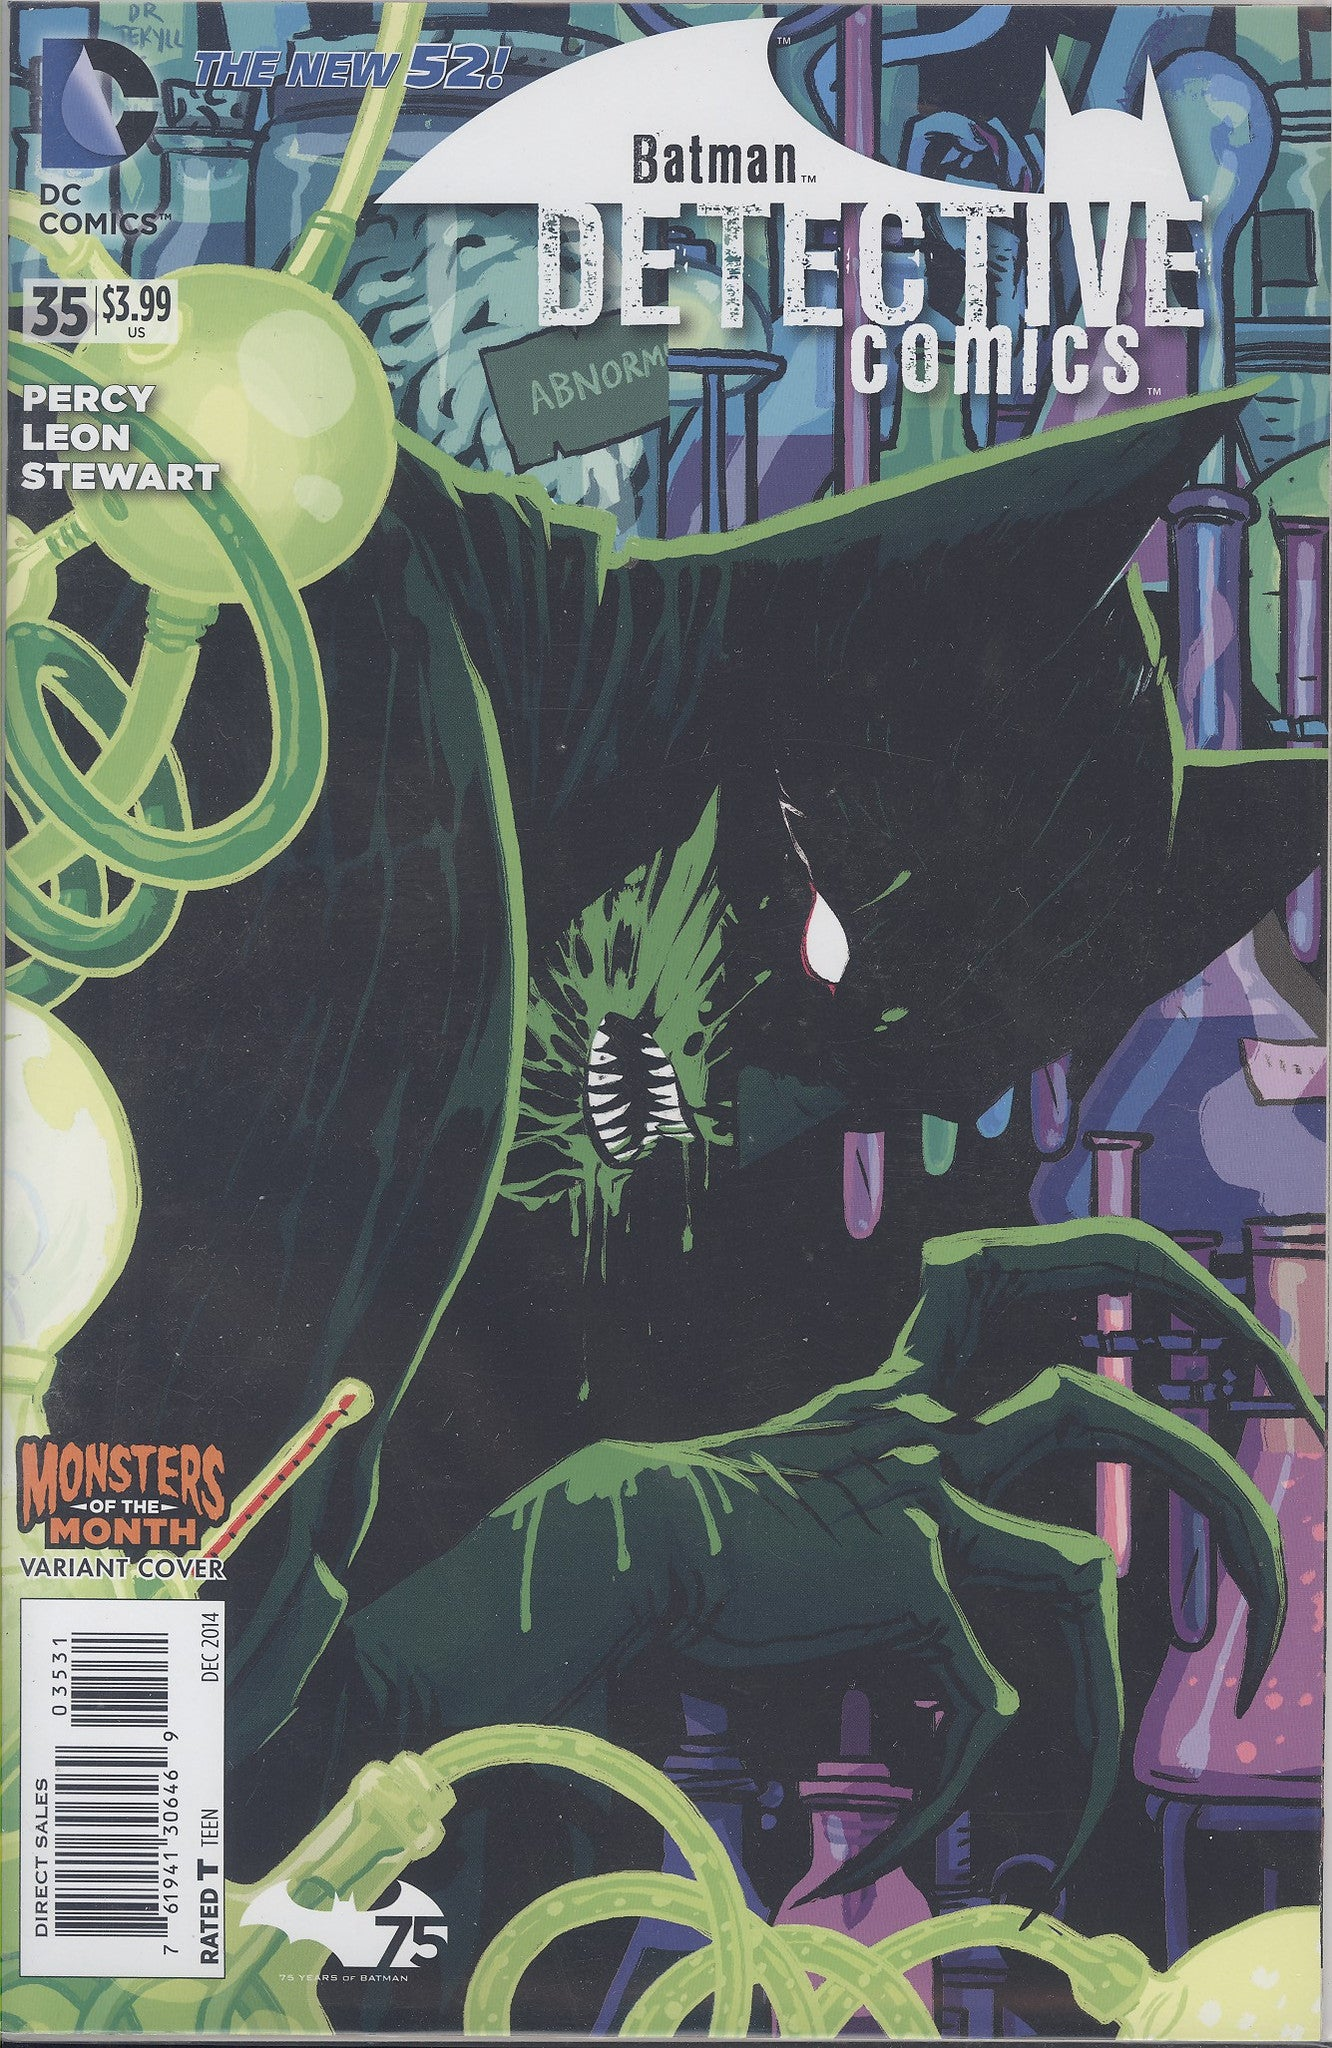 Detective Comics #35 Monsters Var VF/NM